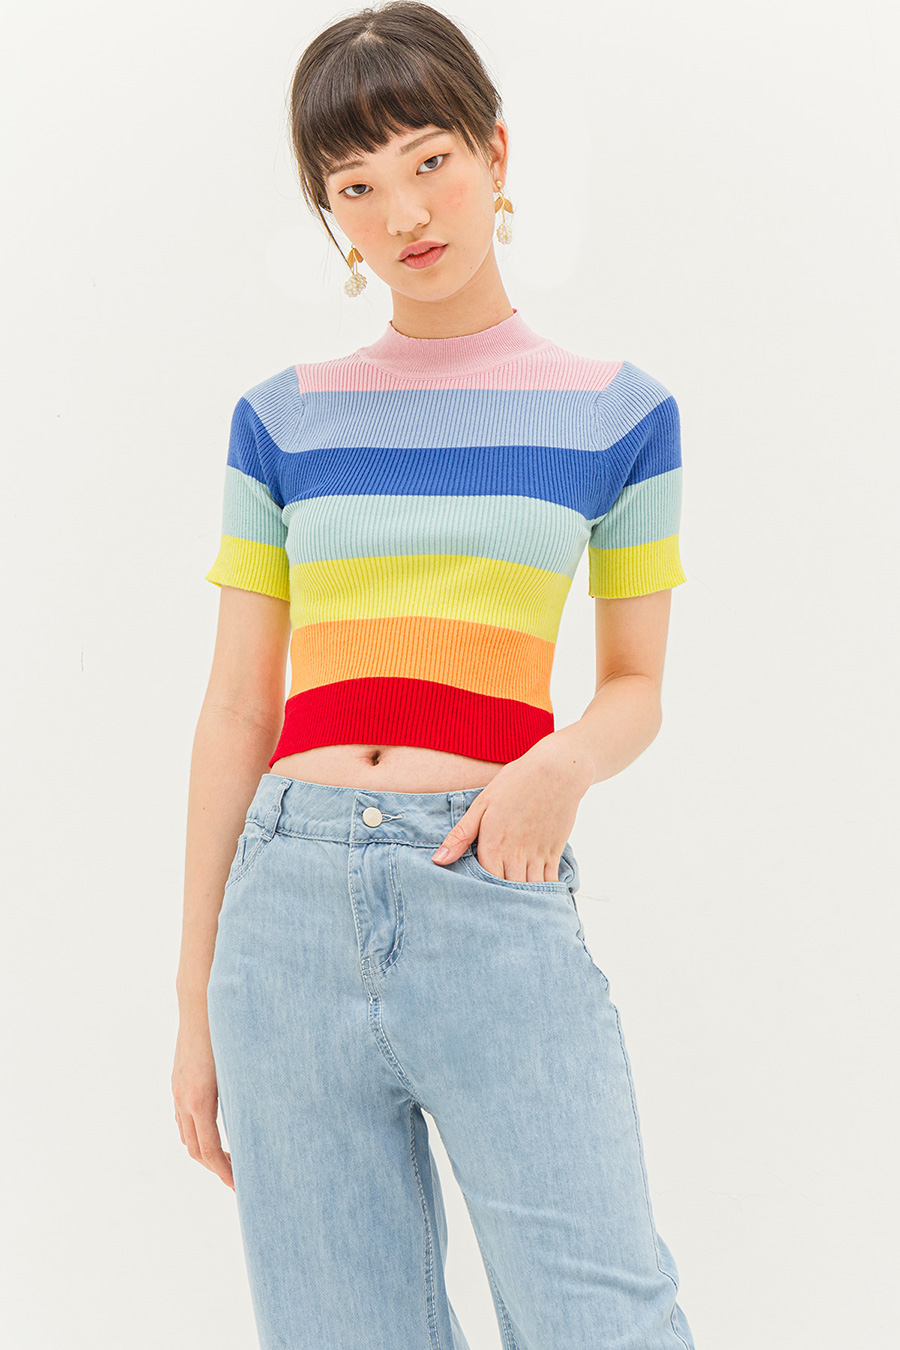 *RESTOCKED* HARPER TOP - RAINBOW